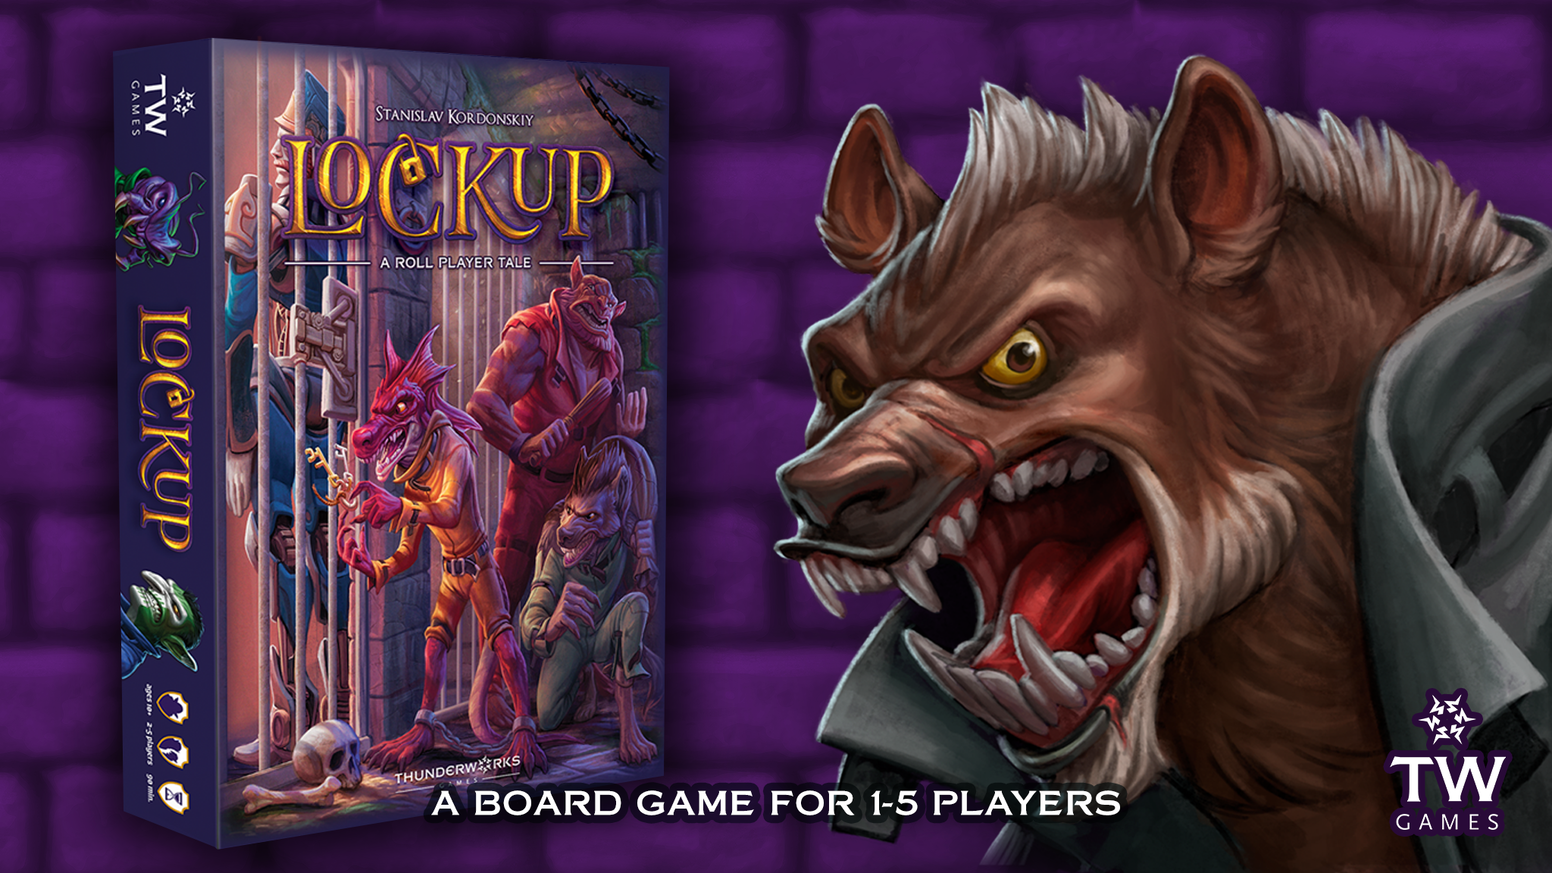 A stand-alone competitive fantasy worker-placement board game for 1-5 players, set in Kulbak Prison, in the world of Roll Player.